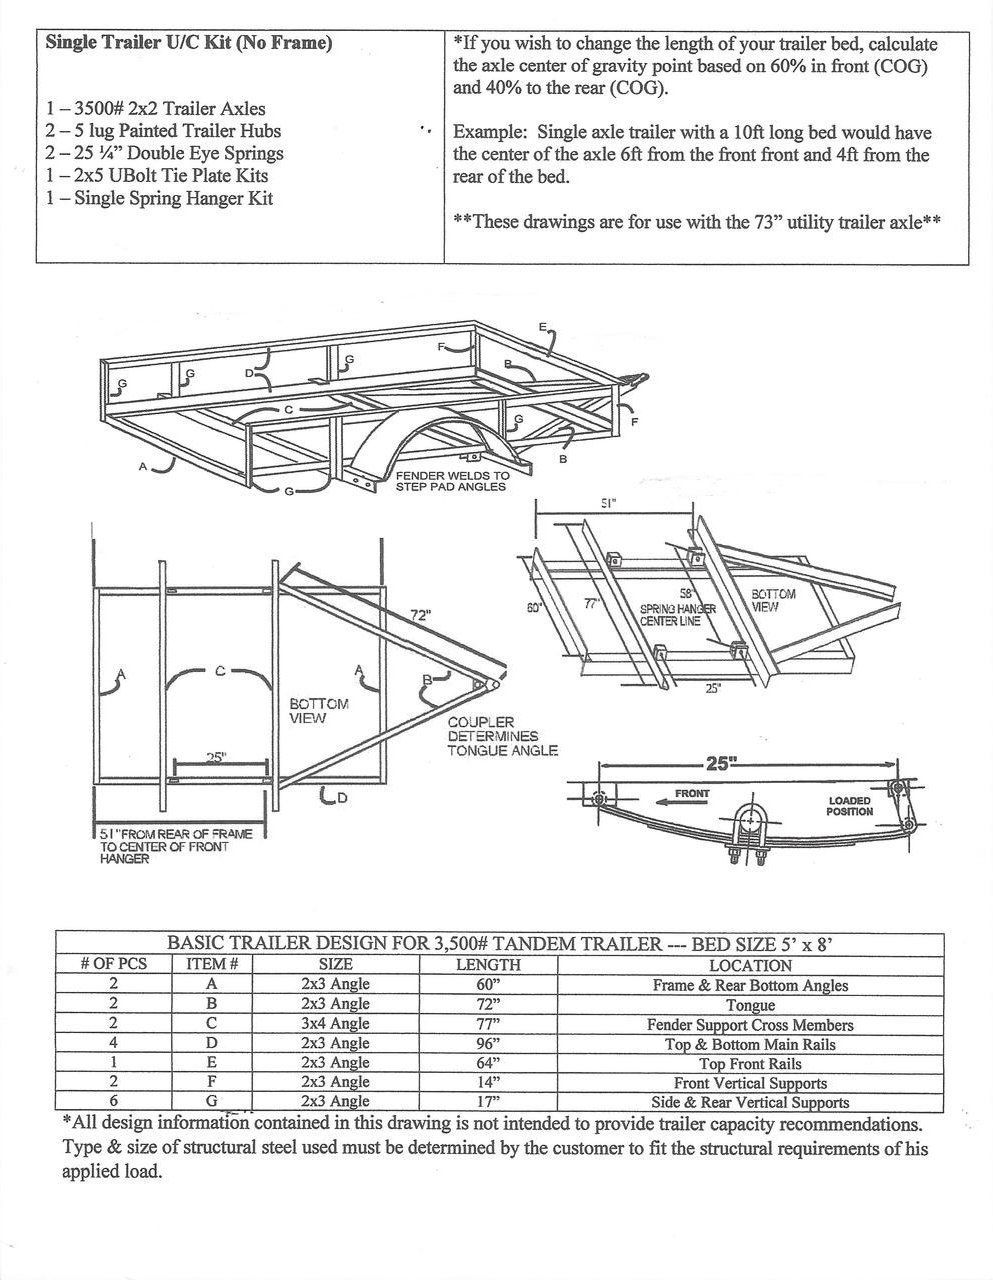 73 single axle trailer undercarriage kit 3500lbs gvwr 73 single axle trailer undercarriage kit 3500lbs gvwr pooptronica Choice Image